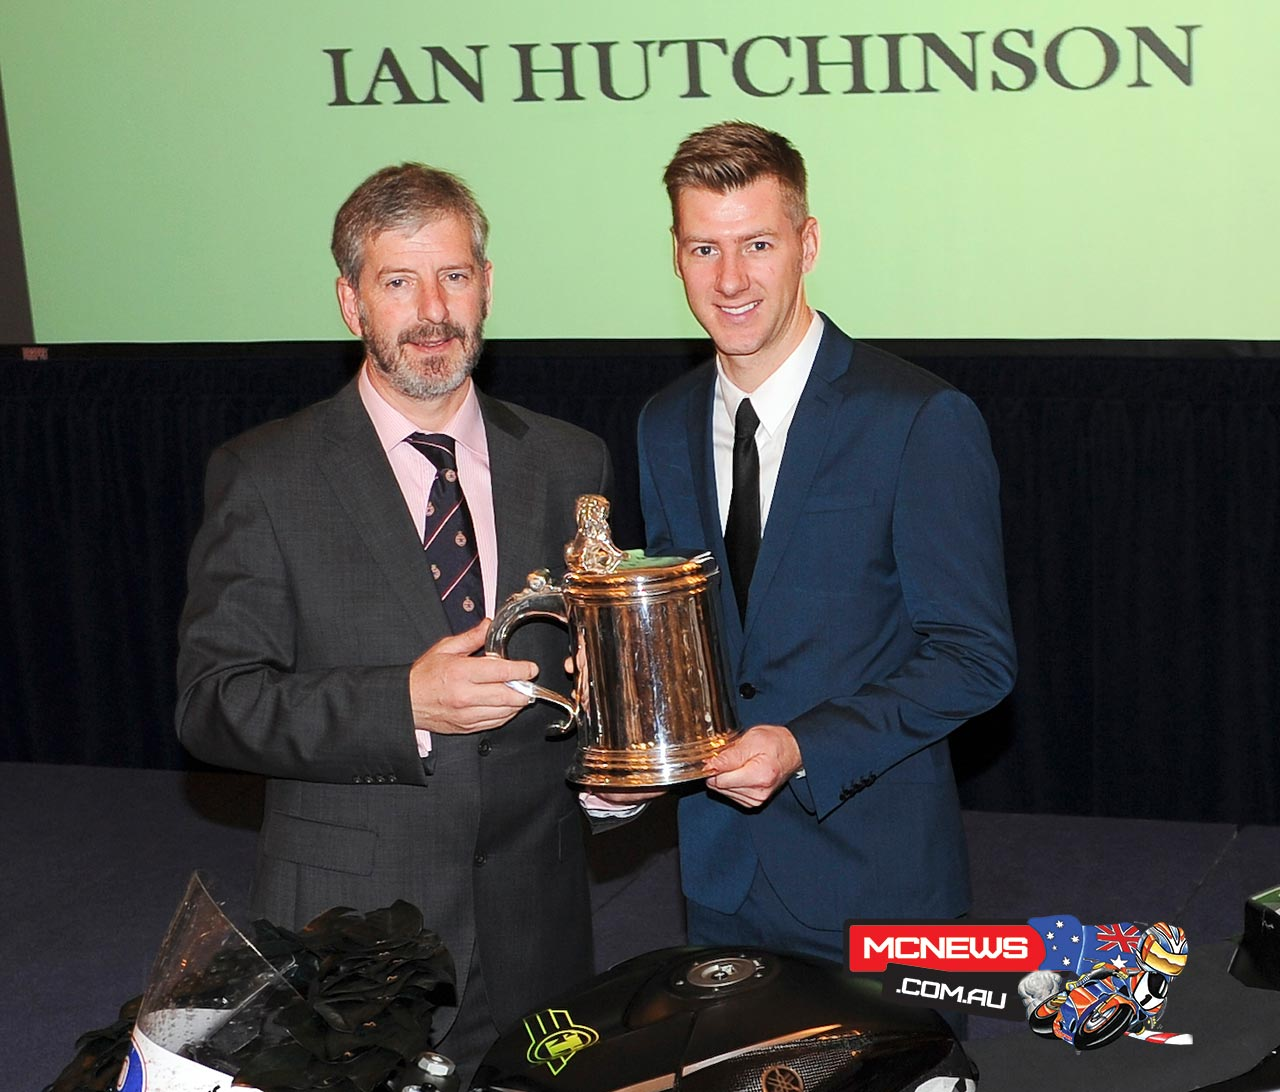 Isle of Man TT road racer Ian Hutchinson awarded the Royal Automobile Club's Torrens Trophy